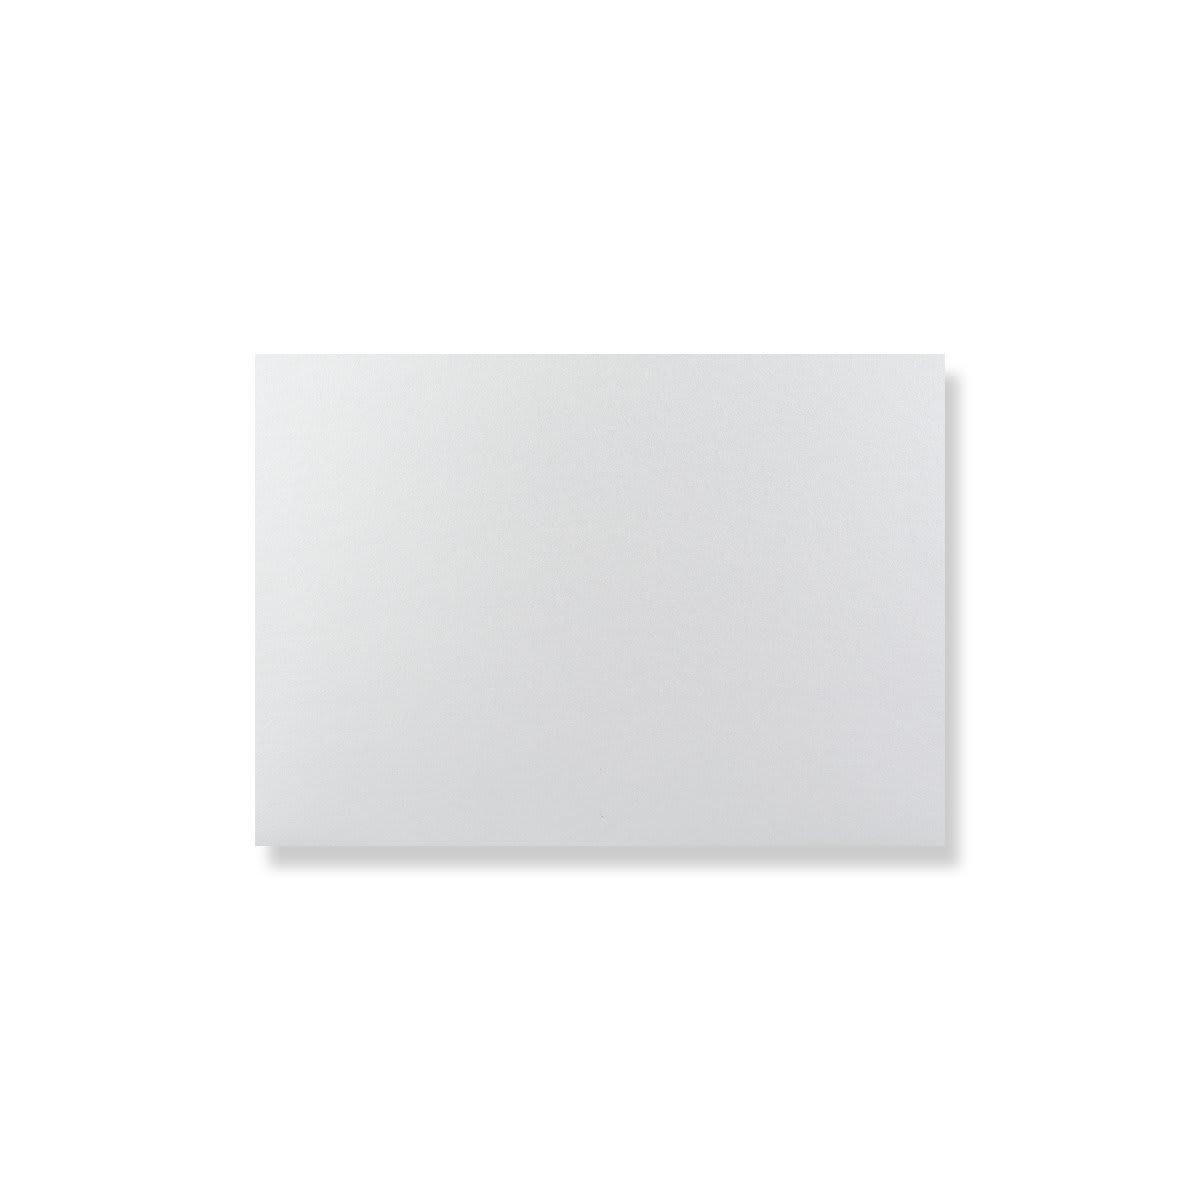 130 x 180mm OYSTER PEARLESCENT ANNOUNCEMENT ENVELOPES